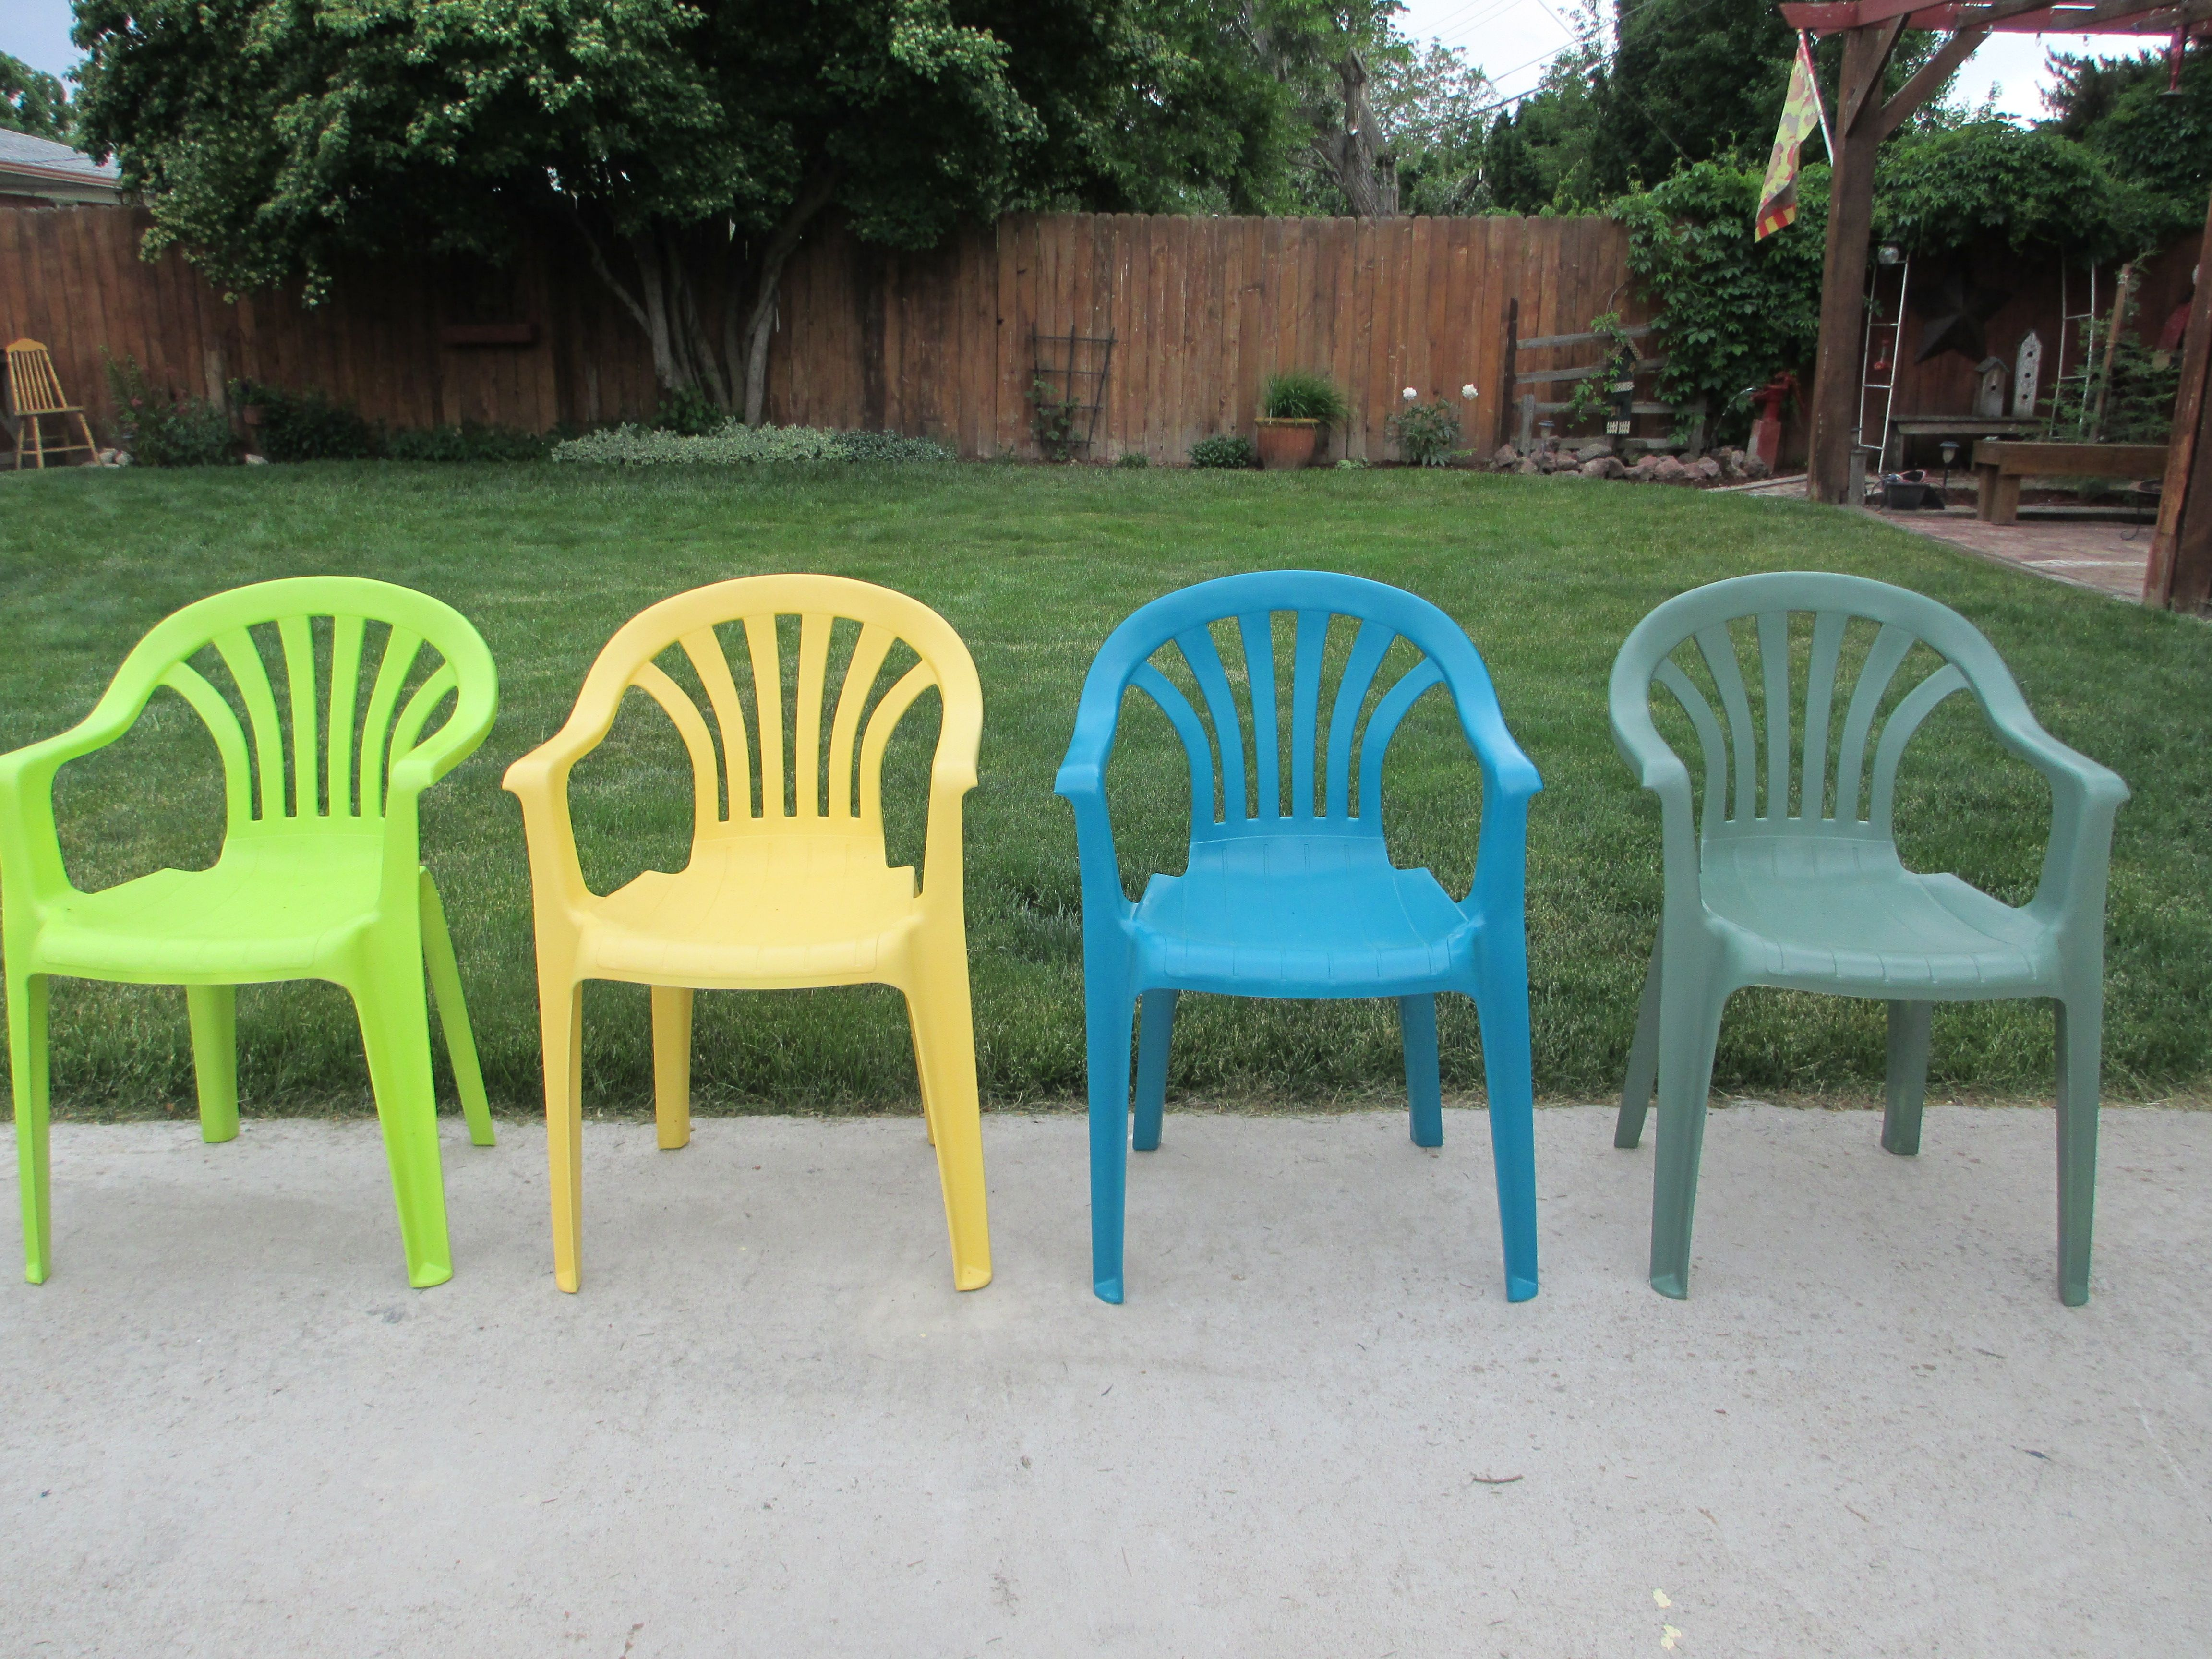 Our Plain White Plastic Lawn Chairs Needed A Facelift This